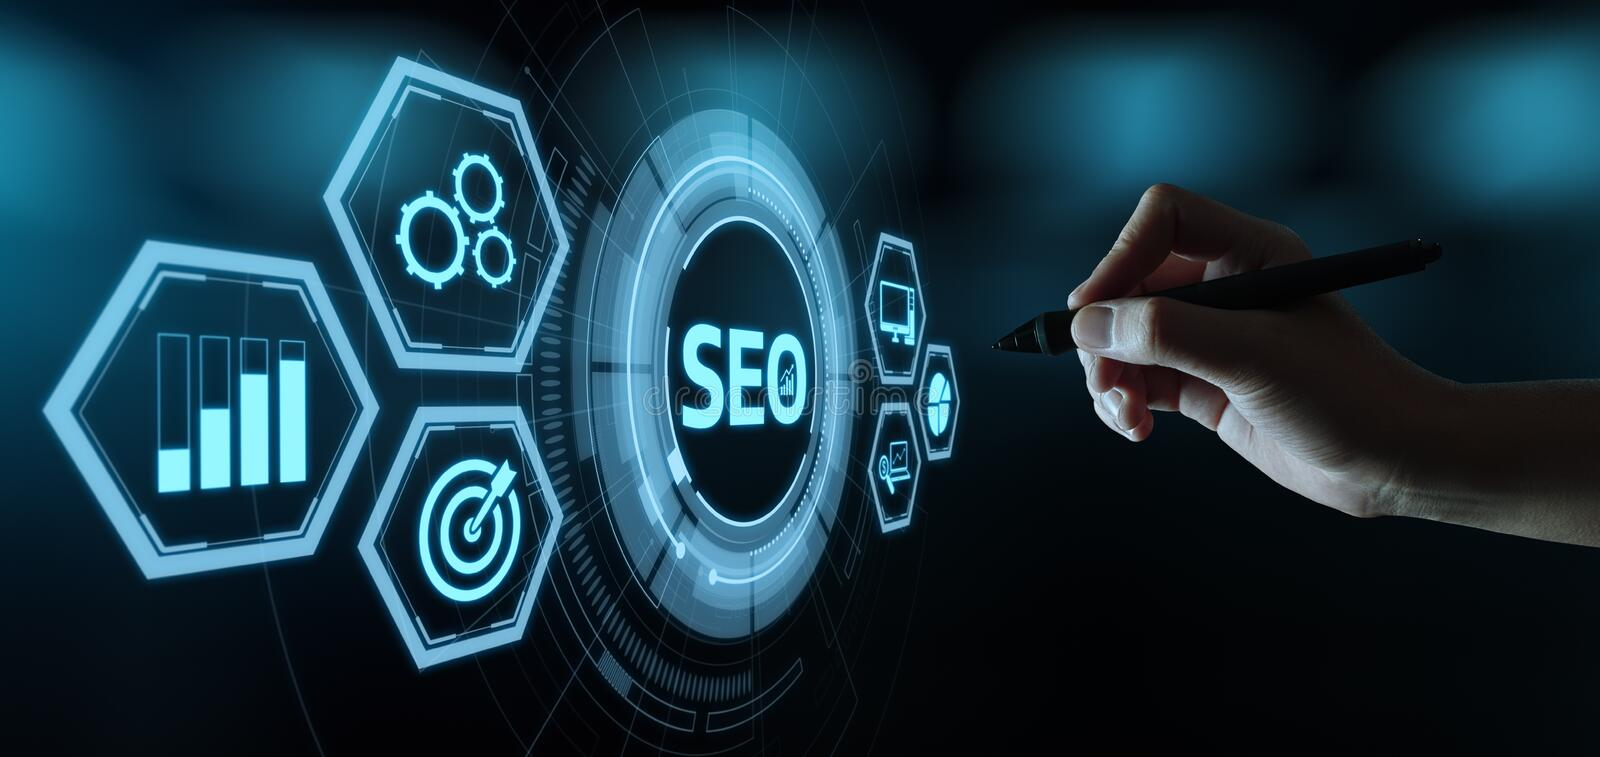 SEO Search Engine Optimization Marketing Ranking Traffic Website Internet Business Technology Concept.  royalty free stock photography